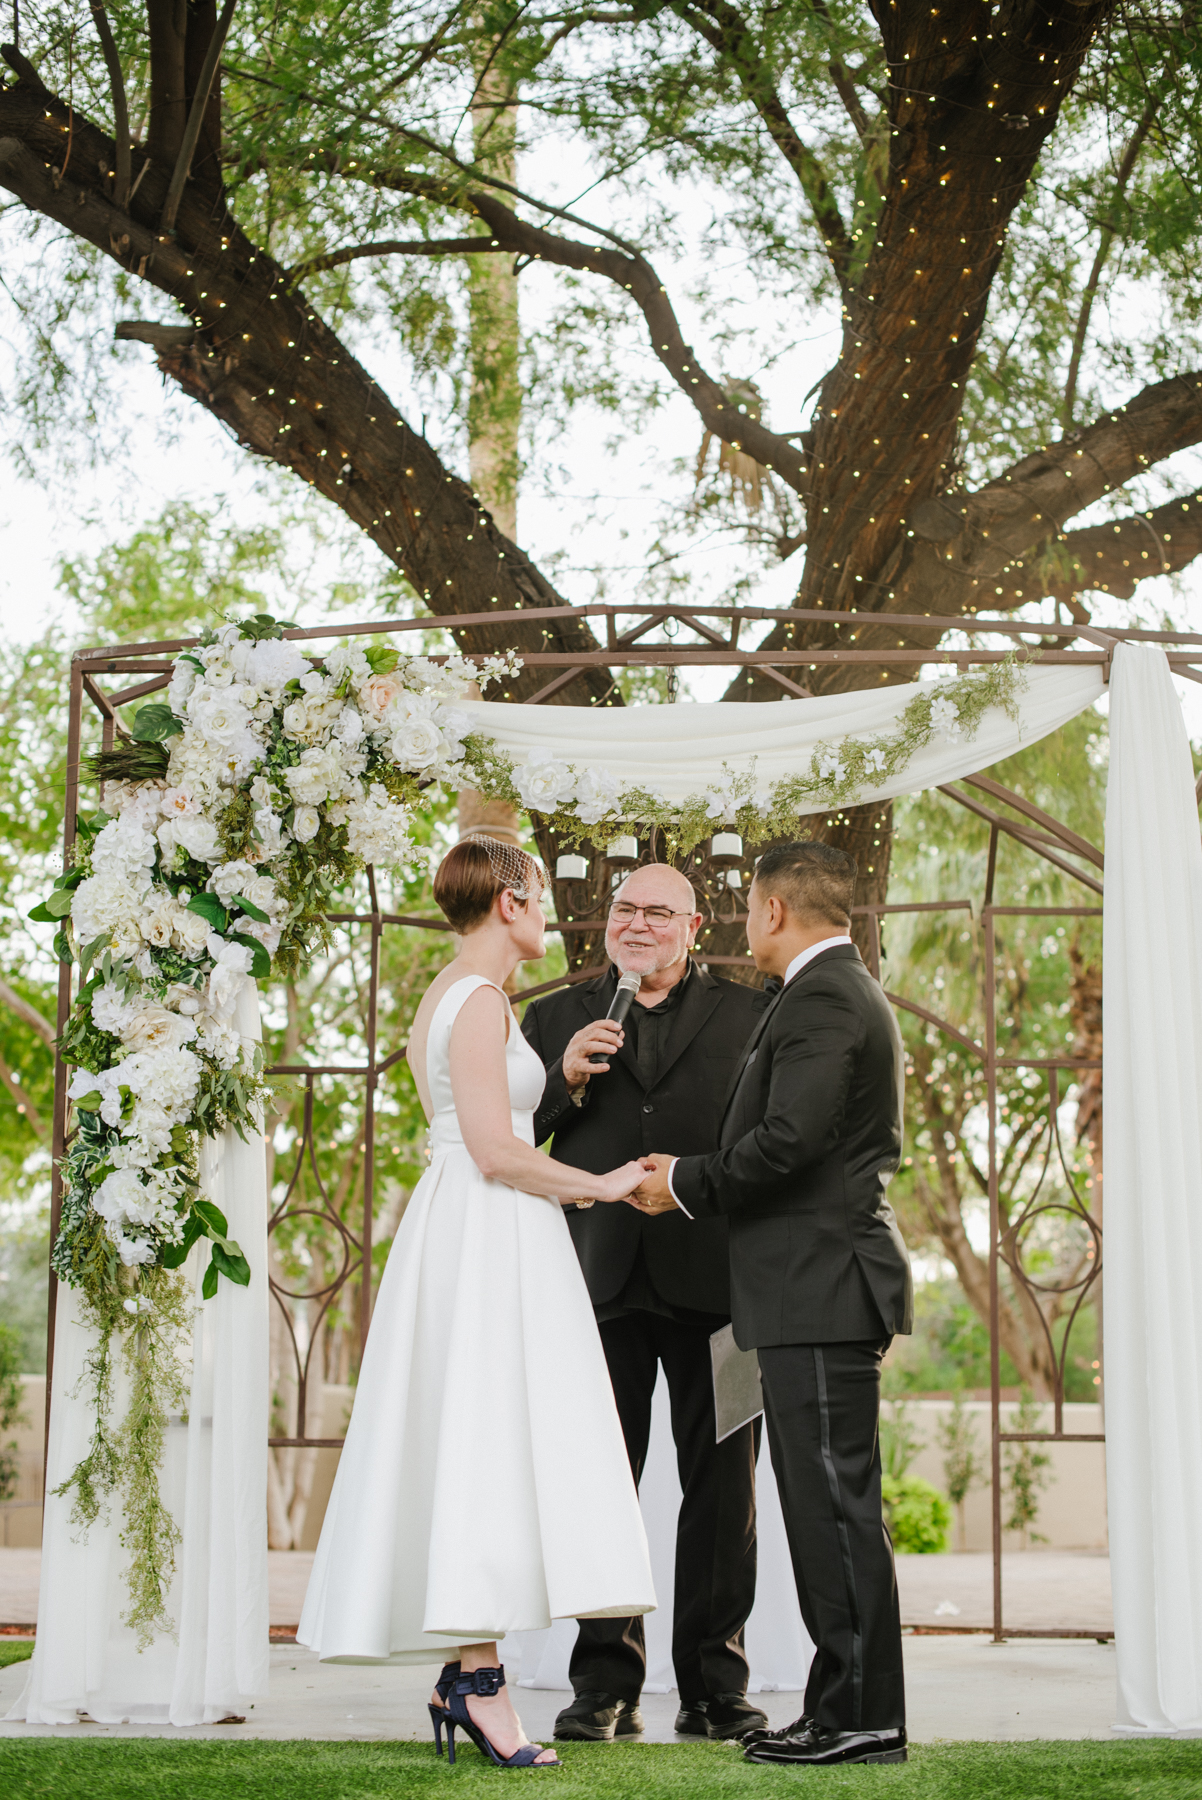 Secret Garden Event Center Wedding - Meredith Amadee Photography-1-2.jpg